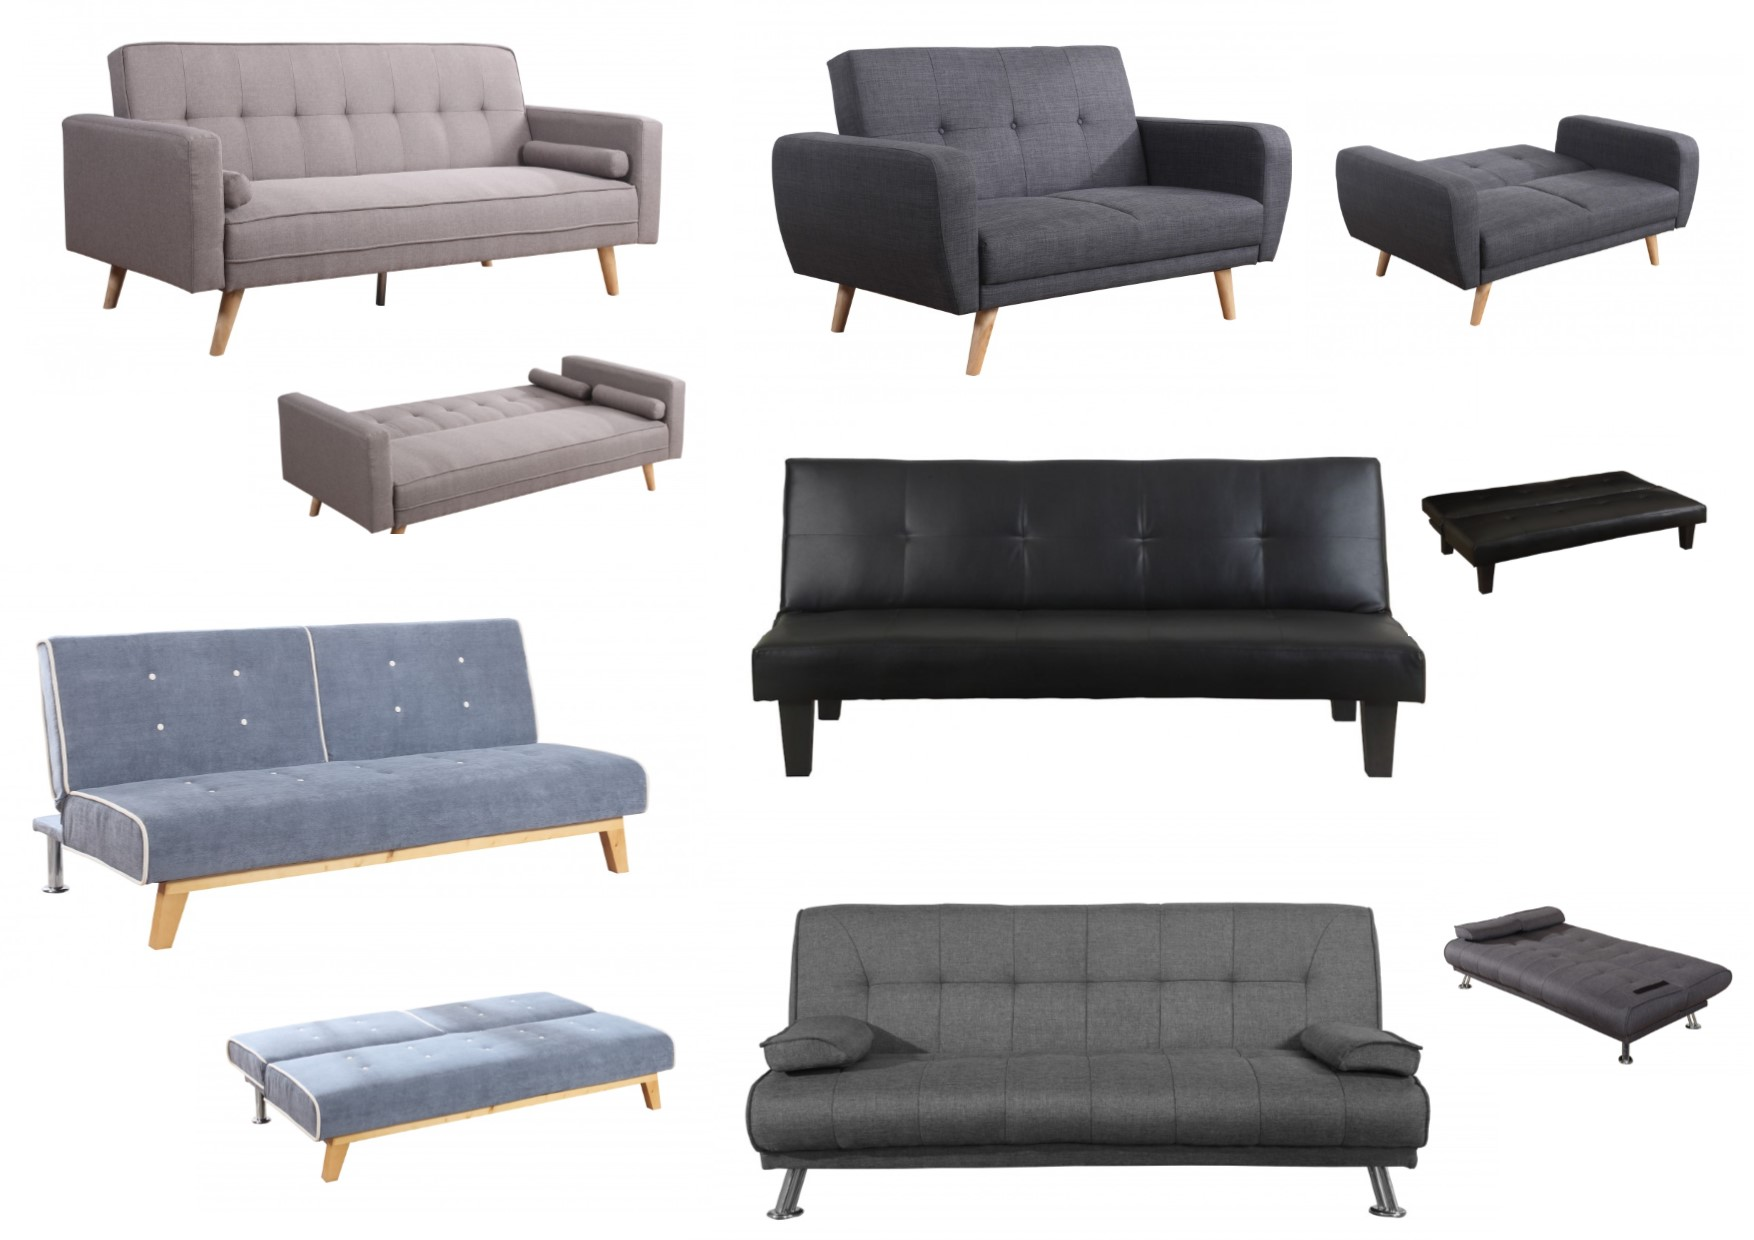 Tremendous Details About Birlea Fabric And Faux Leather Sofa Bed Collection Grey Black Brown Ibusinesslaw Wood Chair Design Ideas Ibusinesslaworg